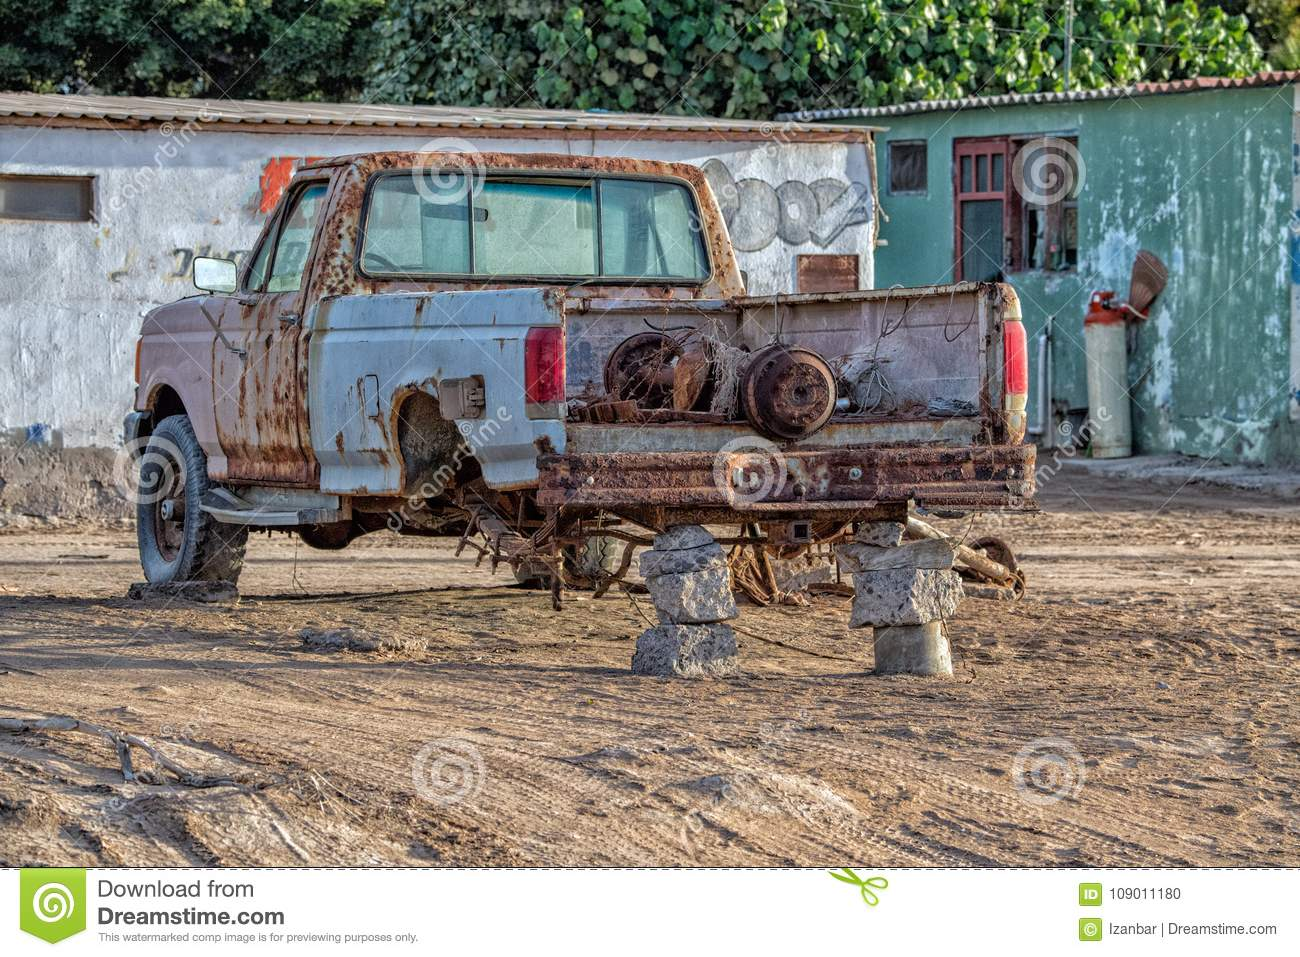 Download Old Rusted Abandoned Car No Tires Stock Photo - Image of broken, metal: 109011180